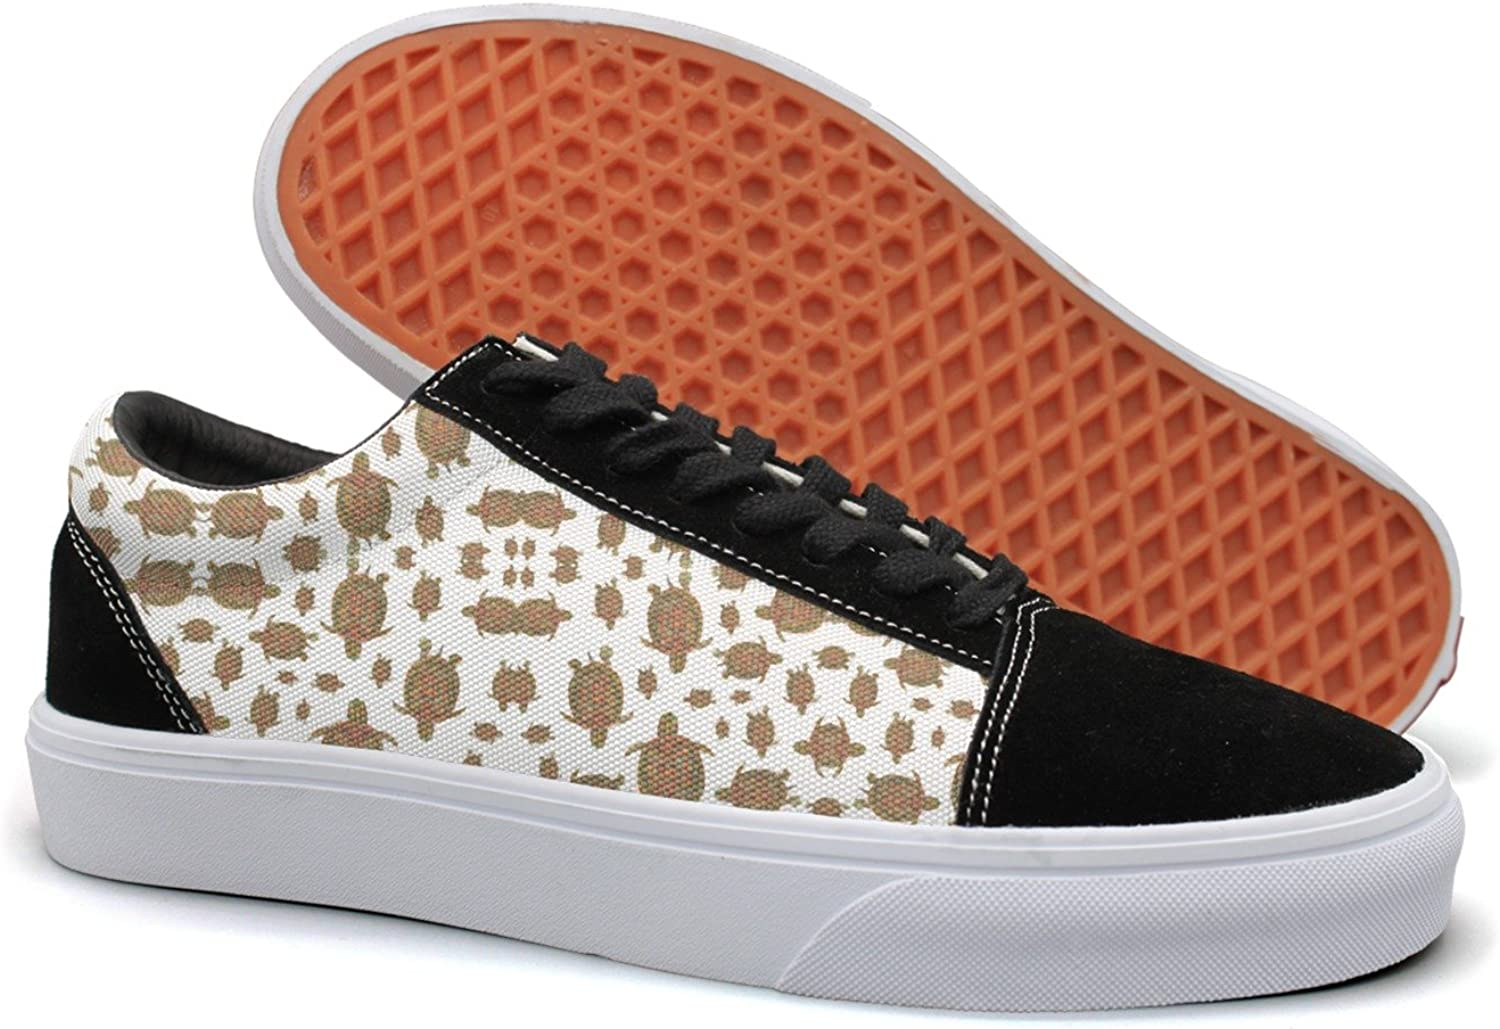 SERHJOI Keppel Teerd Women's Colourful Sea Turtles Casual Flat Canvas shoes Low-top Lace-up Sneakers